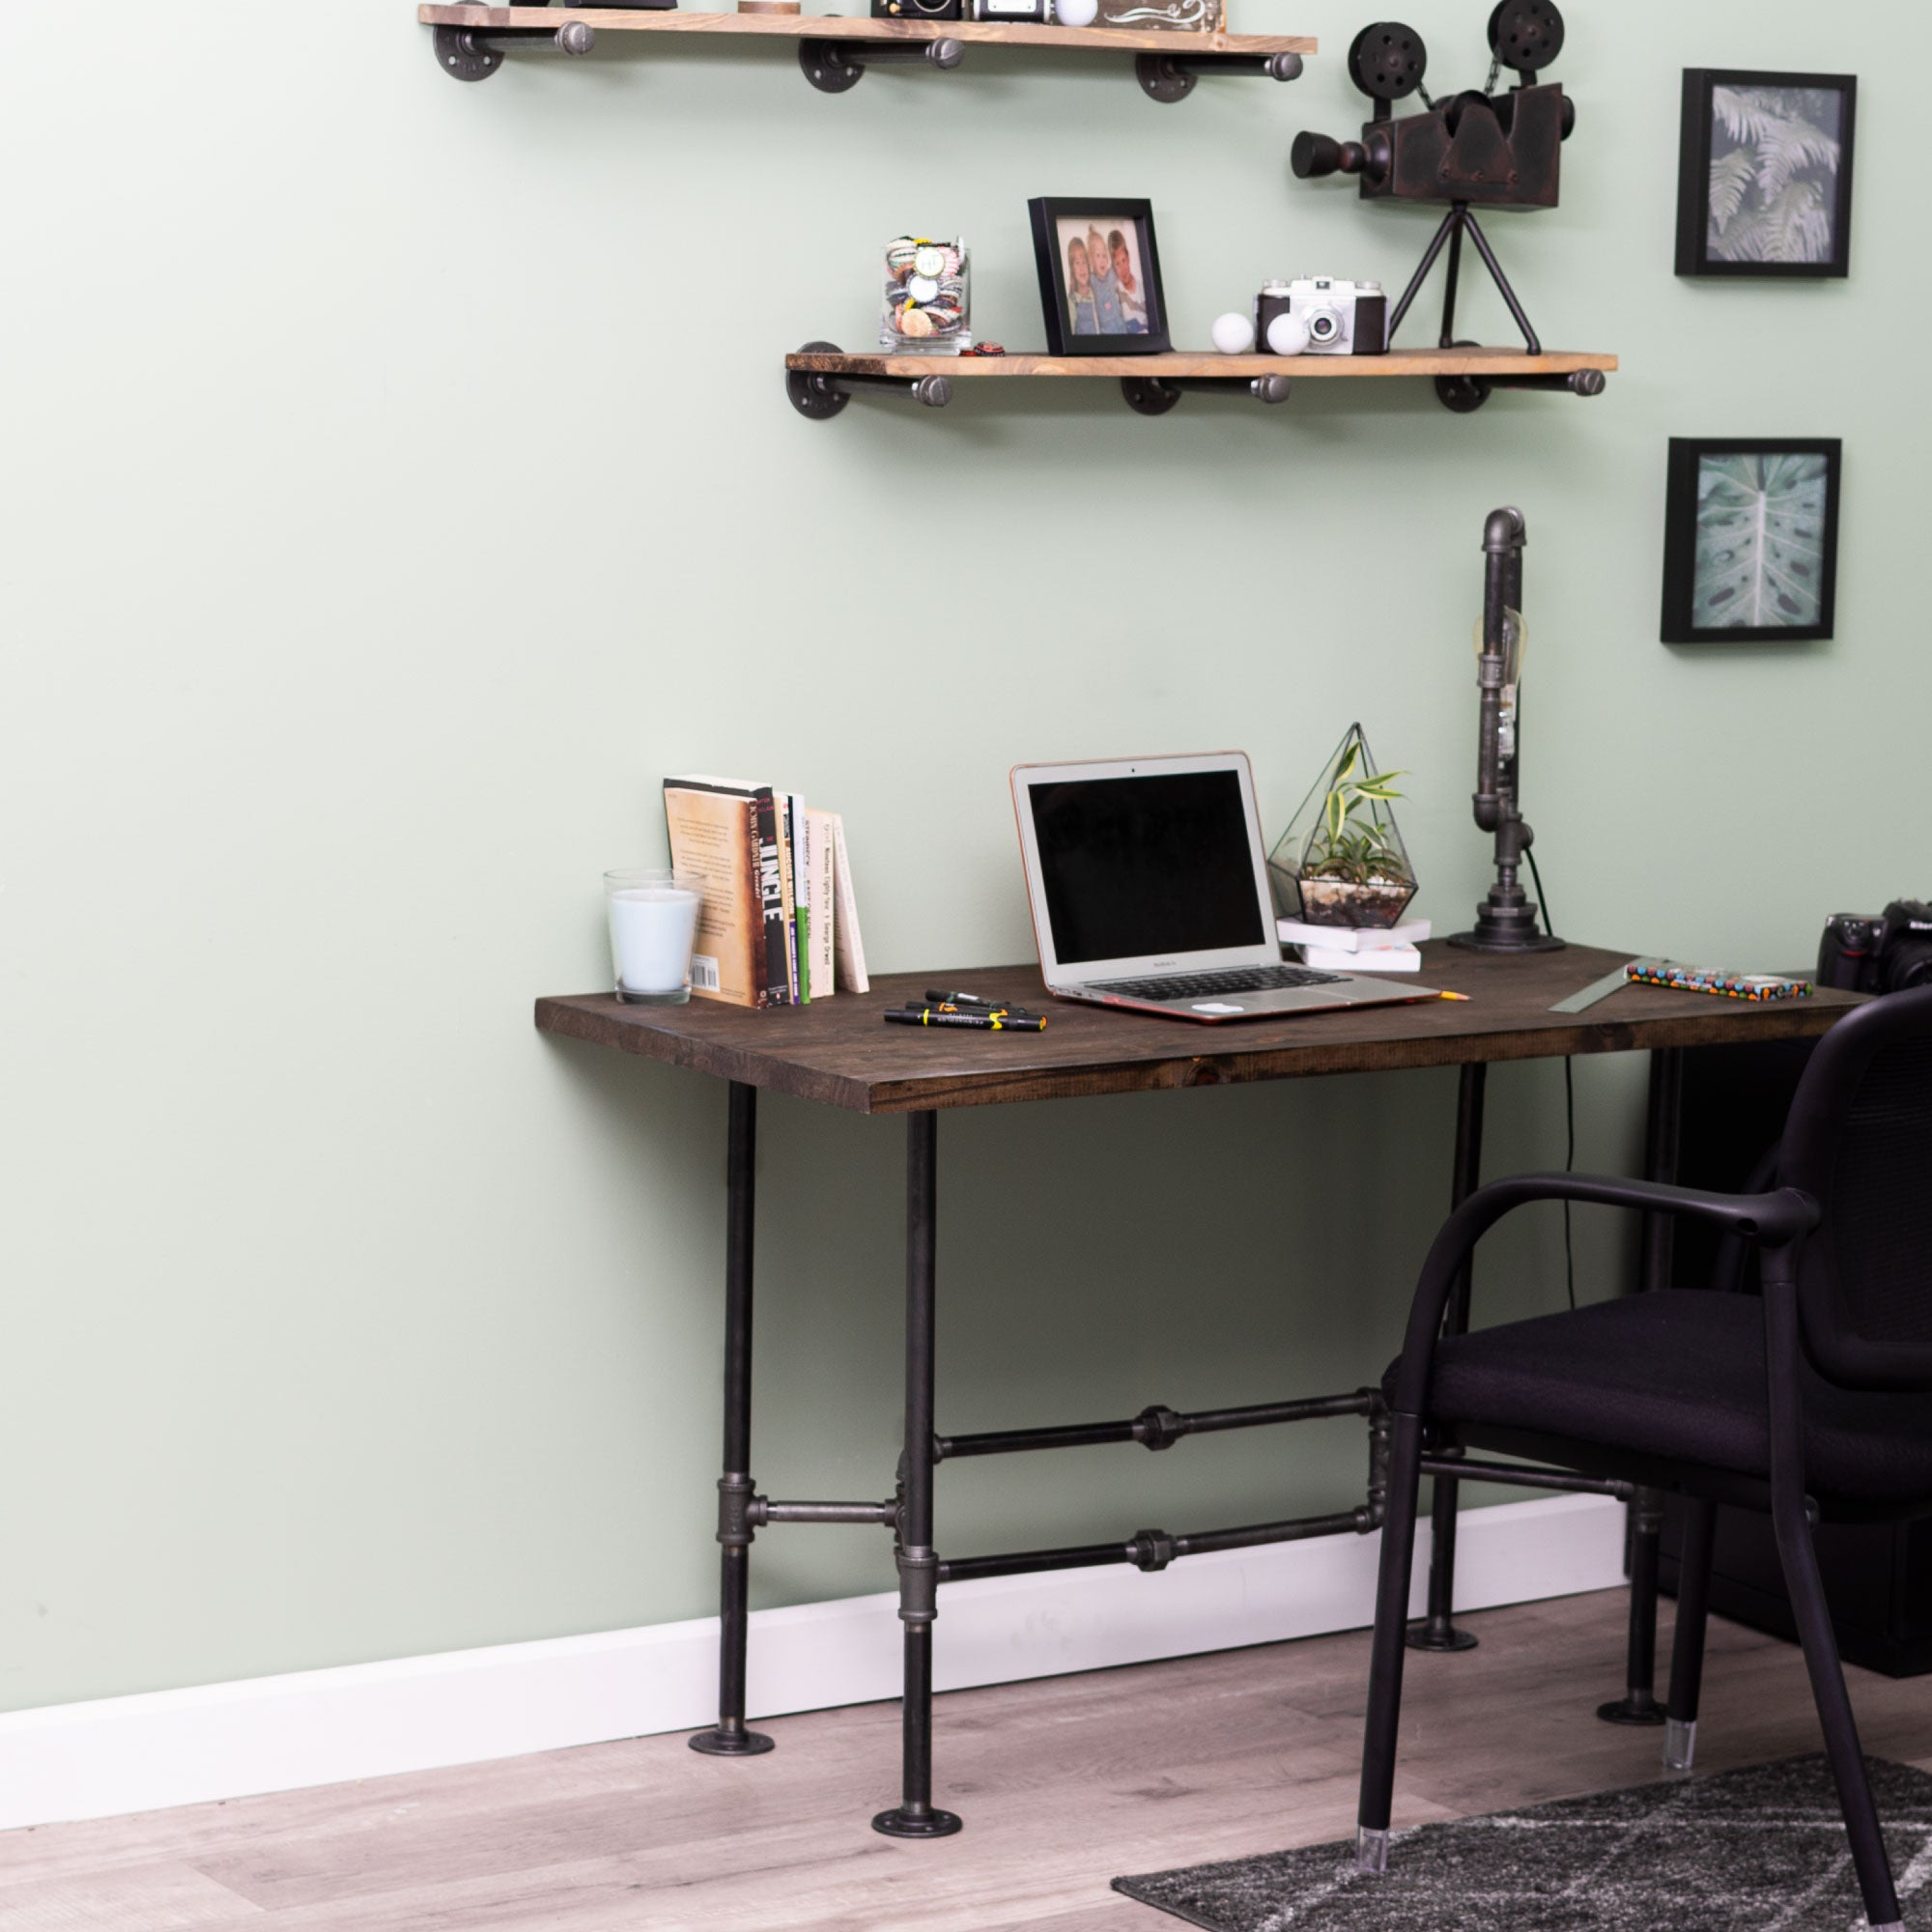 O Design Desk By PIPE DECOR - Pipe Decor